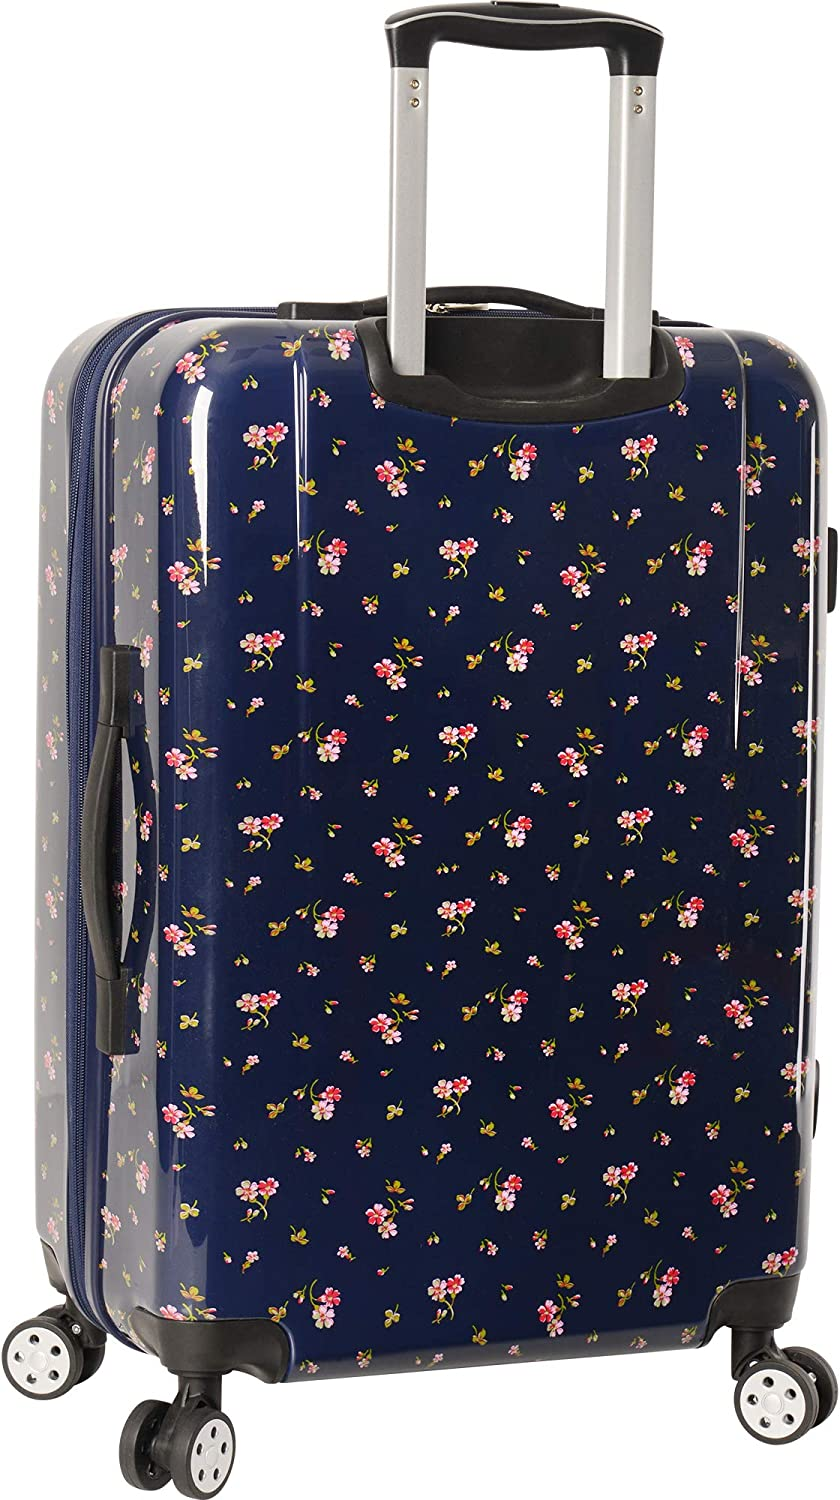 Chaps Expandable Spinner Luggage Suitcase